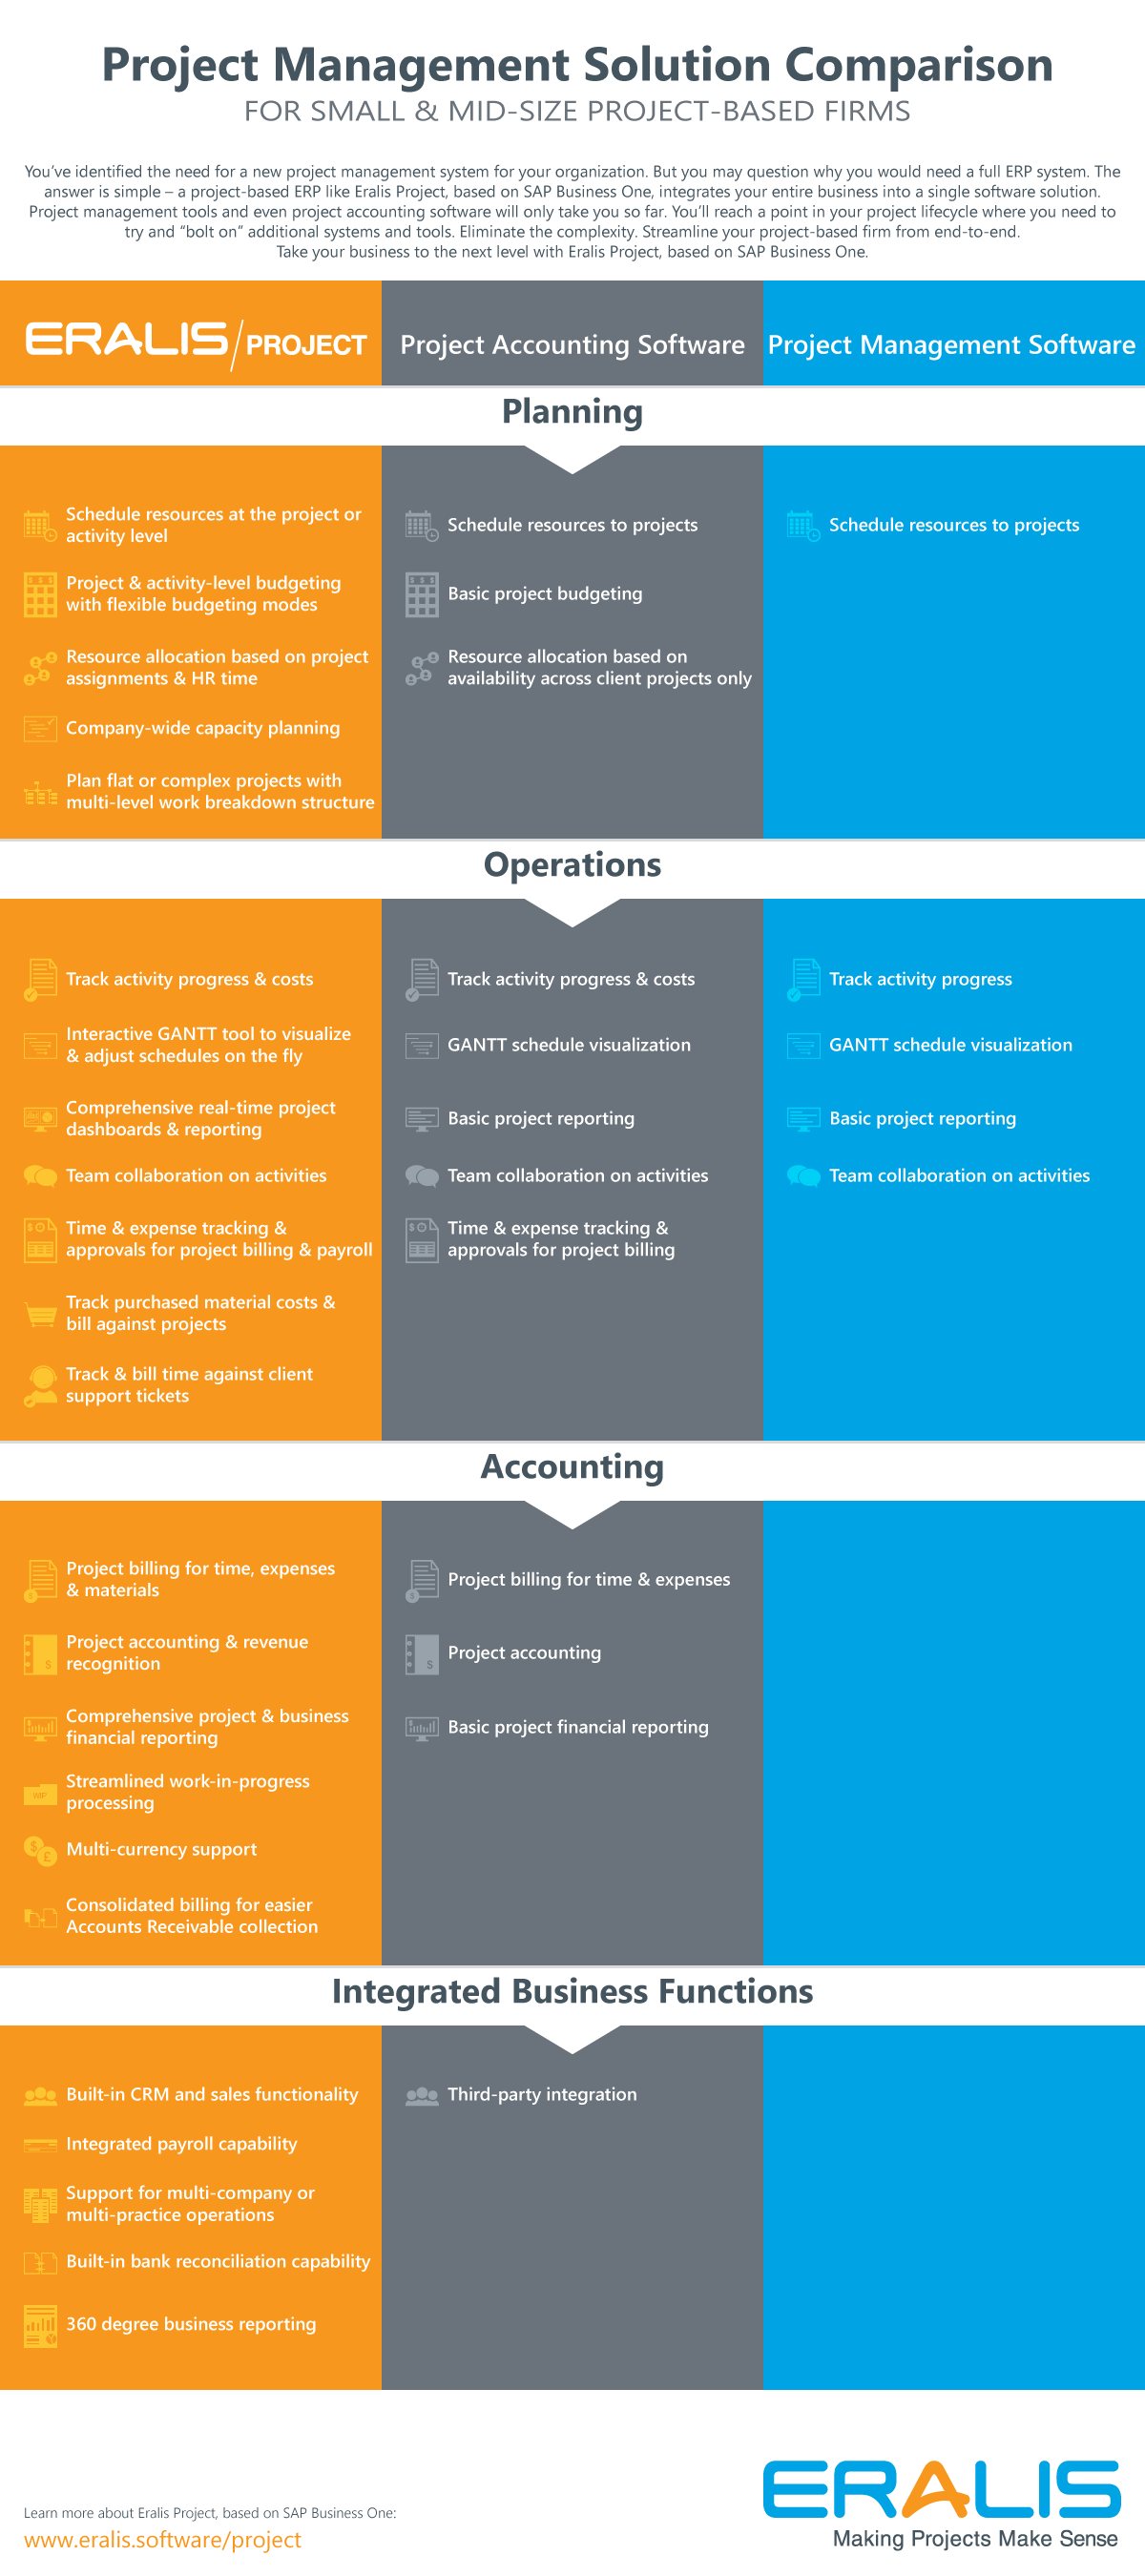 Project Management Software Comparison Infographic